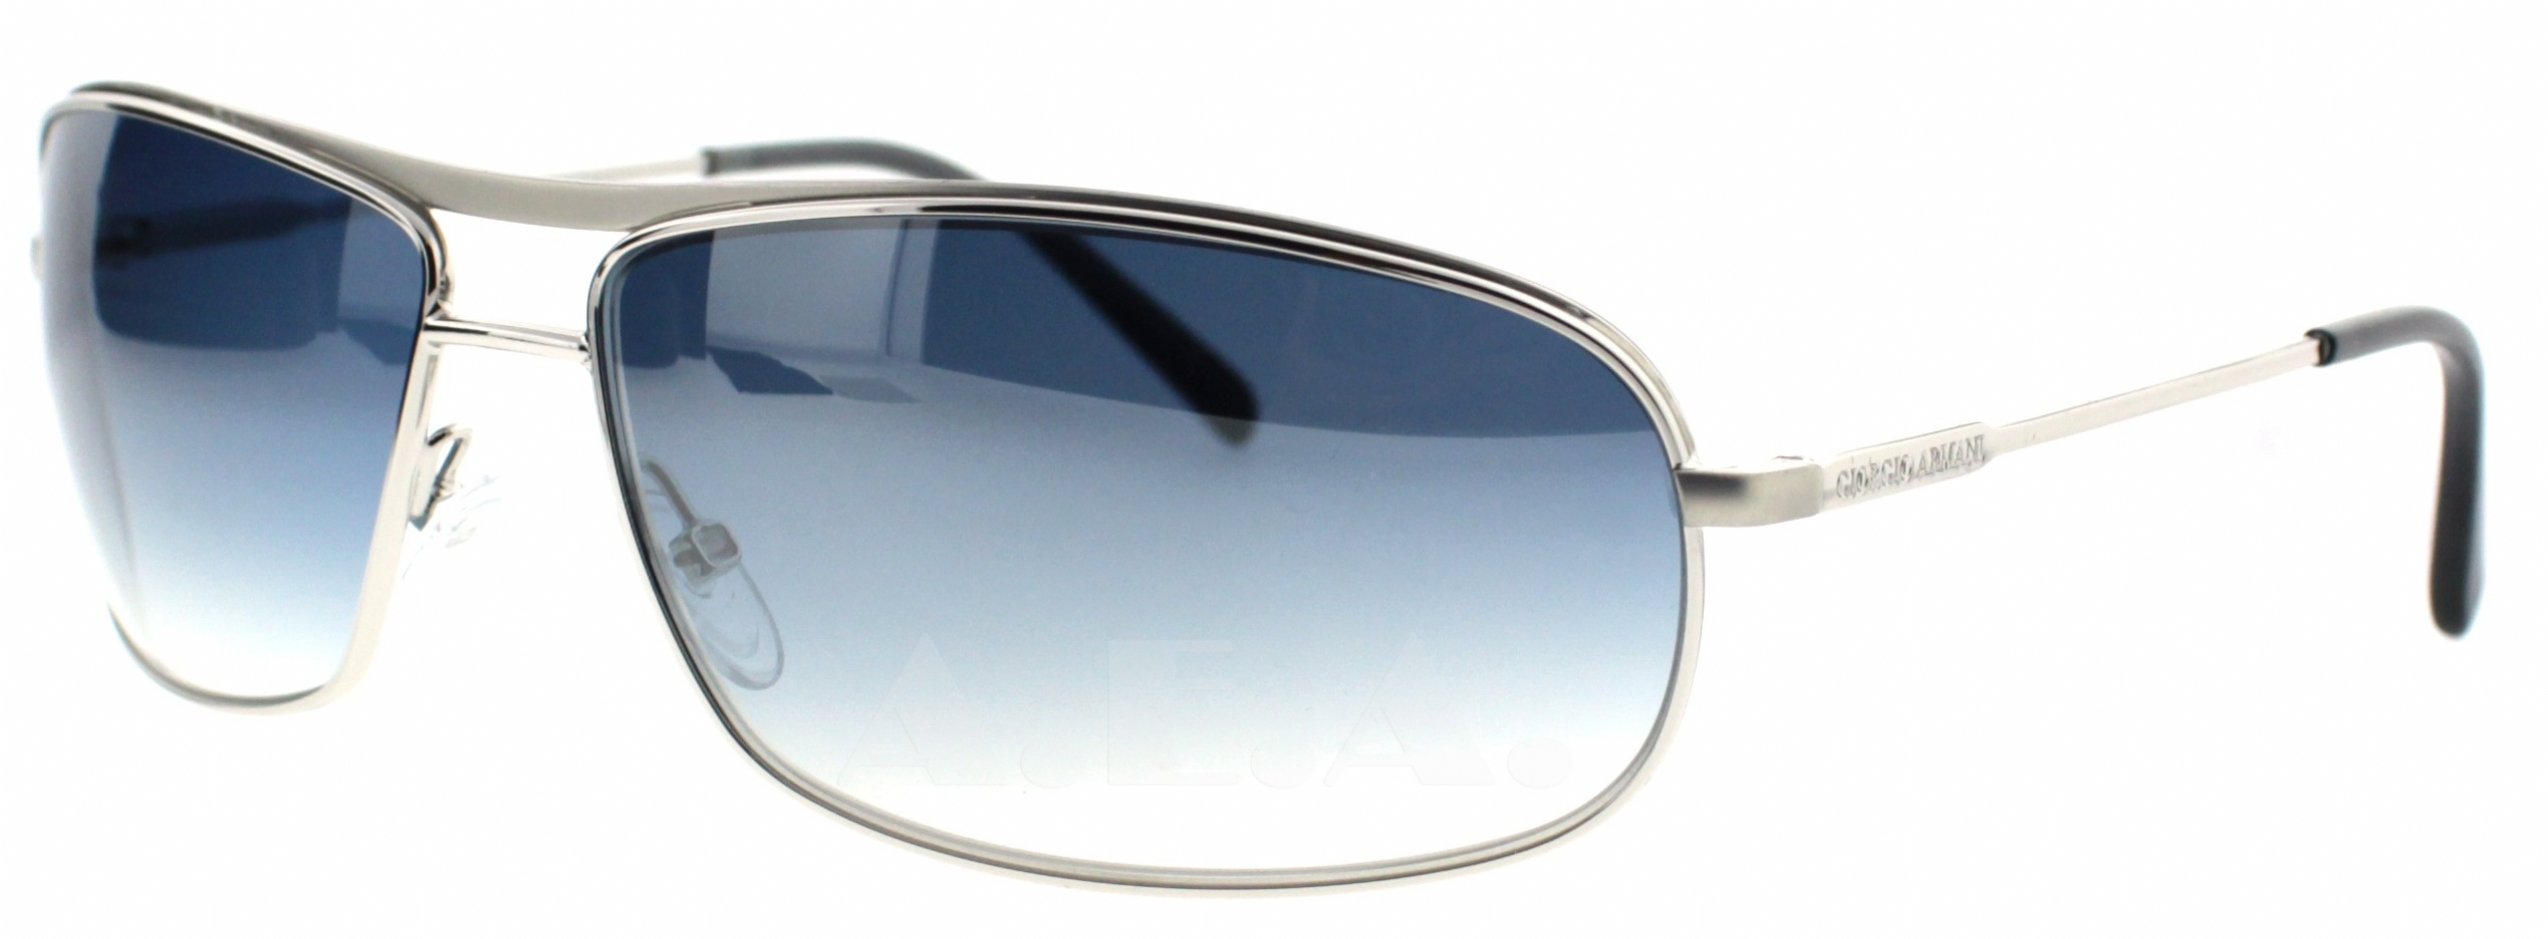 GIORGIO ARMANI Sunglasses 915/S 0010 Palladium 65MM